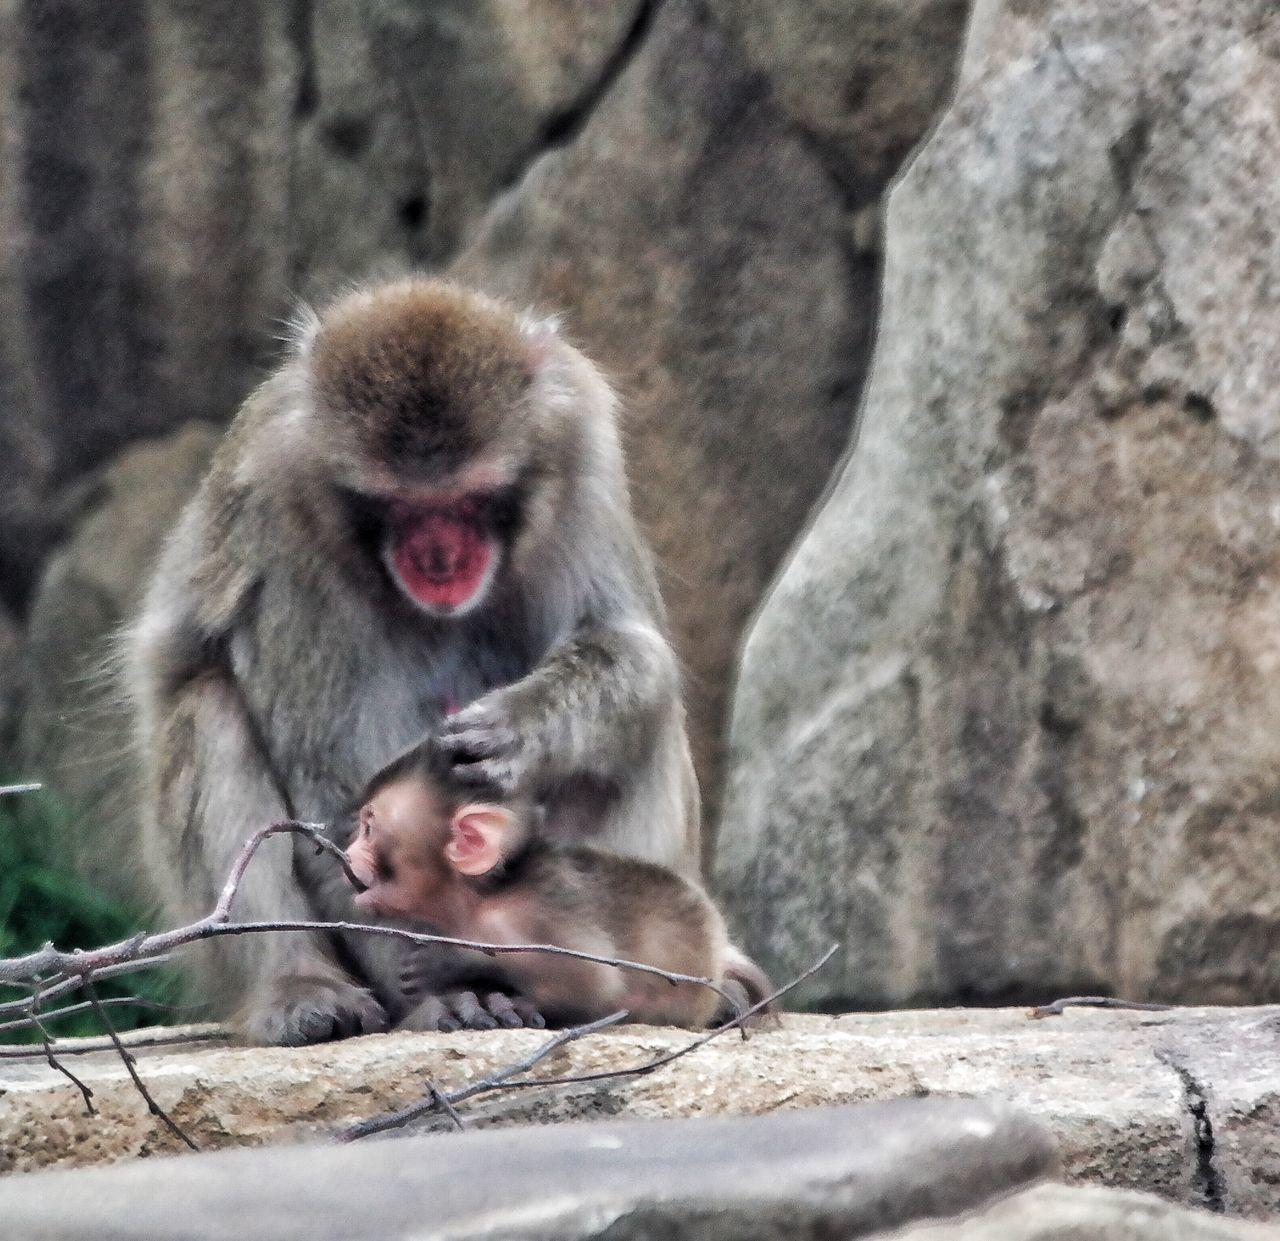 animals in the wild, monkey, animal themes, mammal, day, rock - object, one animal, animal wildlife, outdoors, no people, japanese macaque, nature, close-up